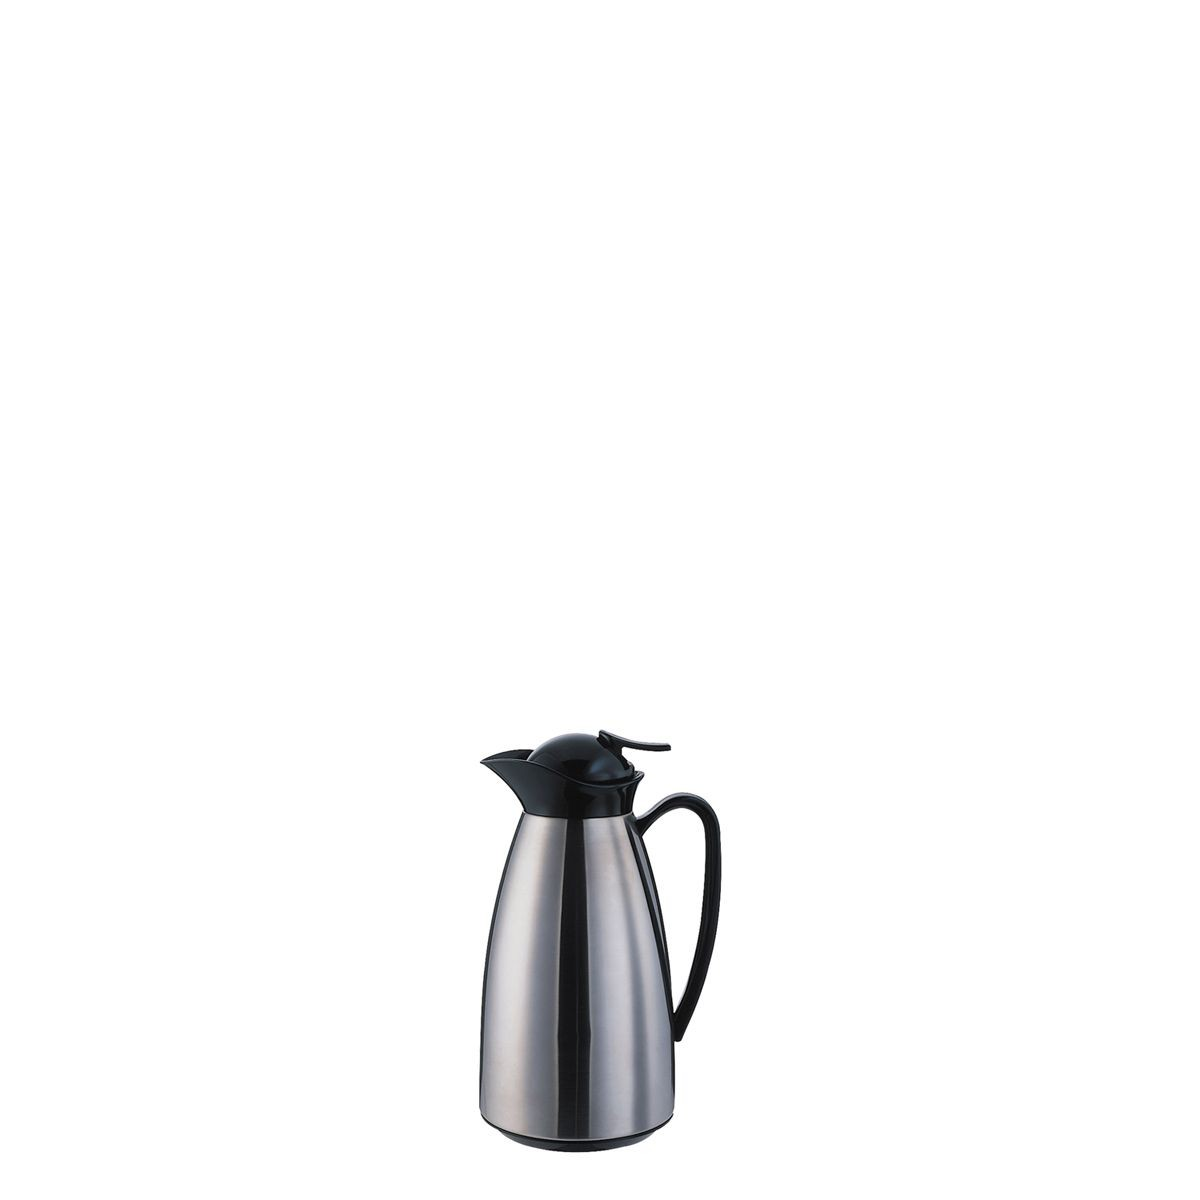 Service Ideas CJ6SS Classy Stainless Steel Carafe 0.6 Liter